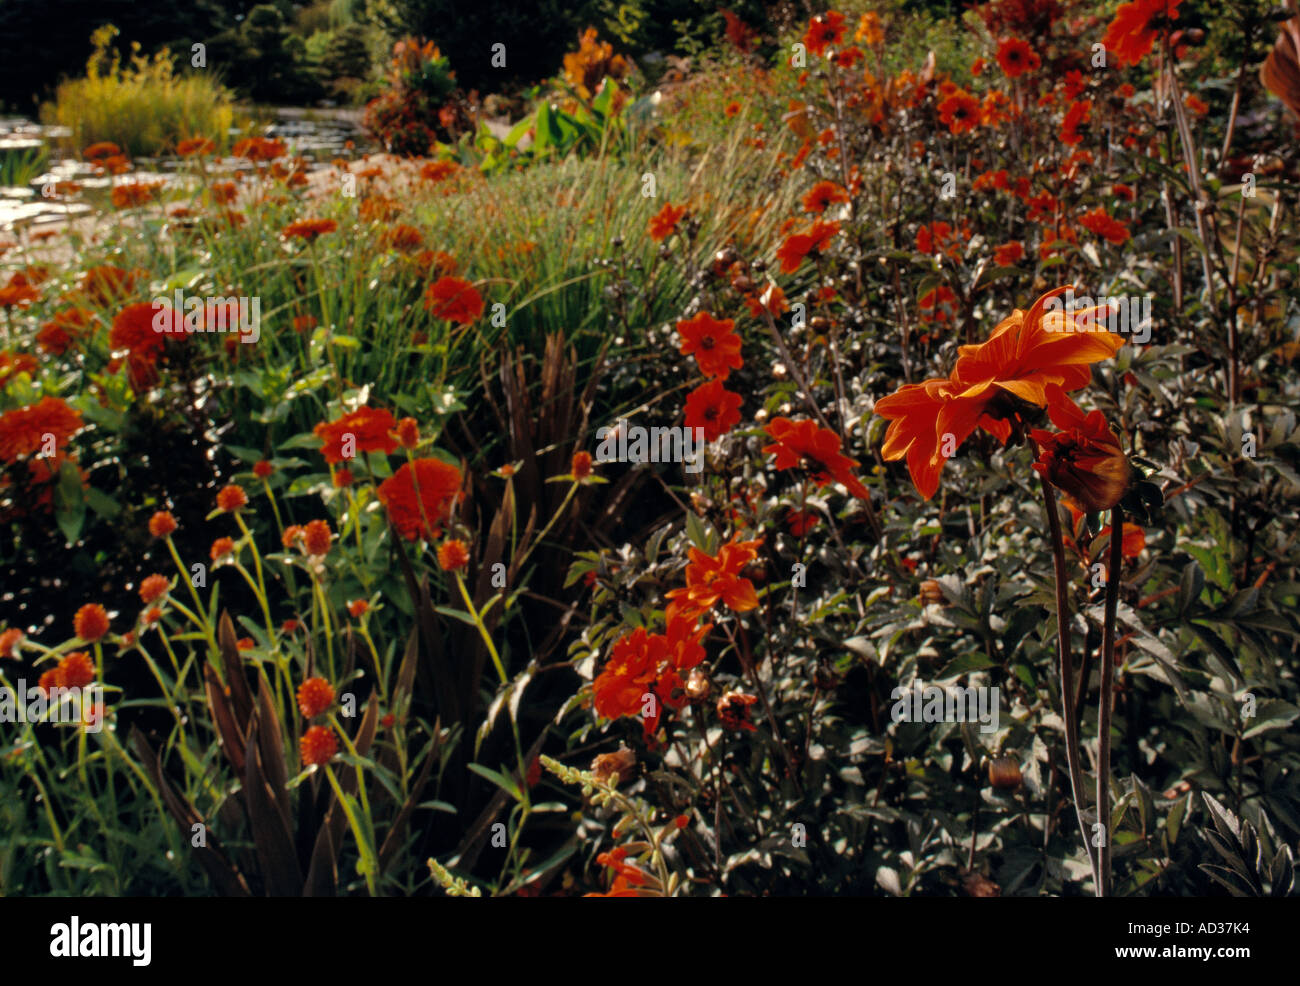 Red flowers bloom is a garden at the Denver Botanic Gardens Stock ...